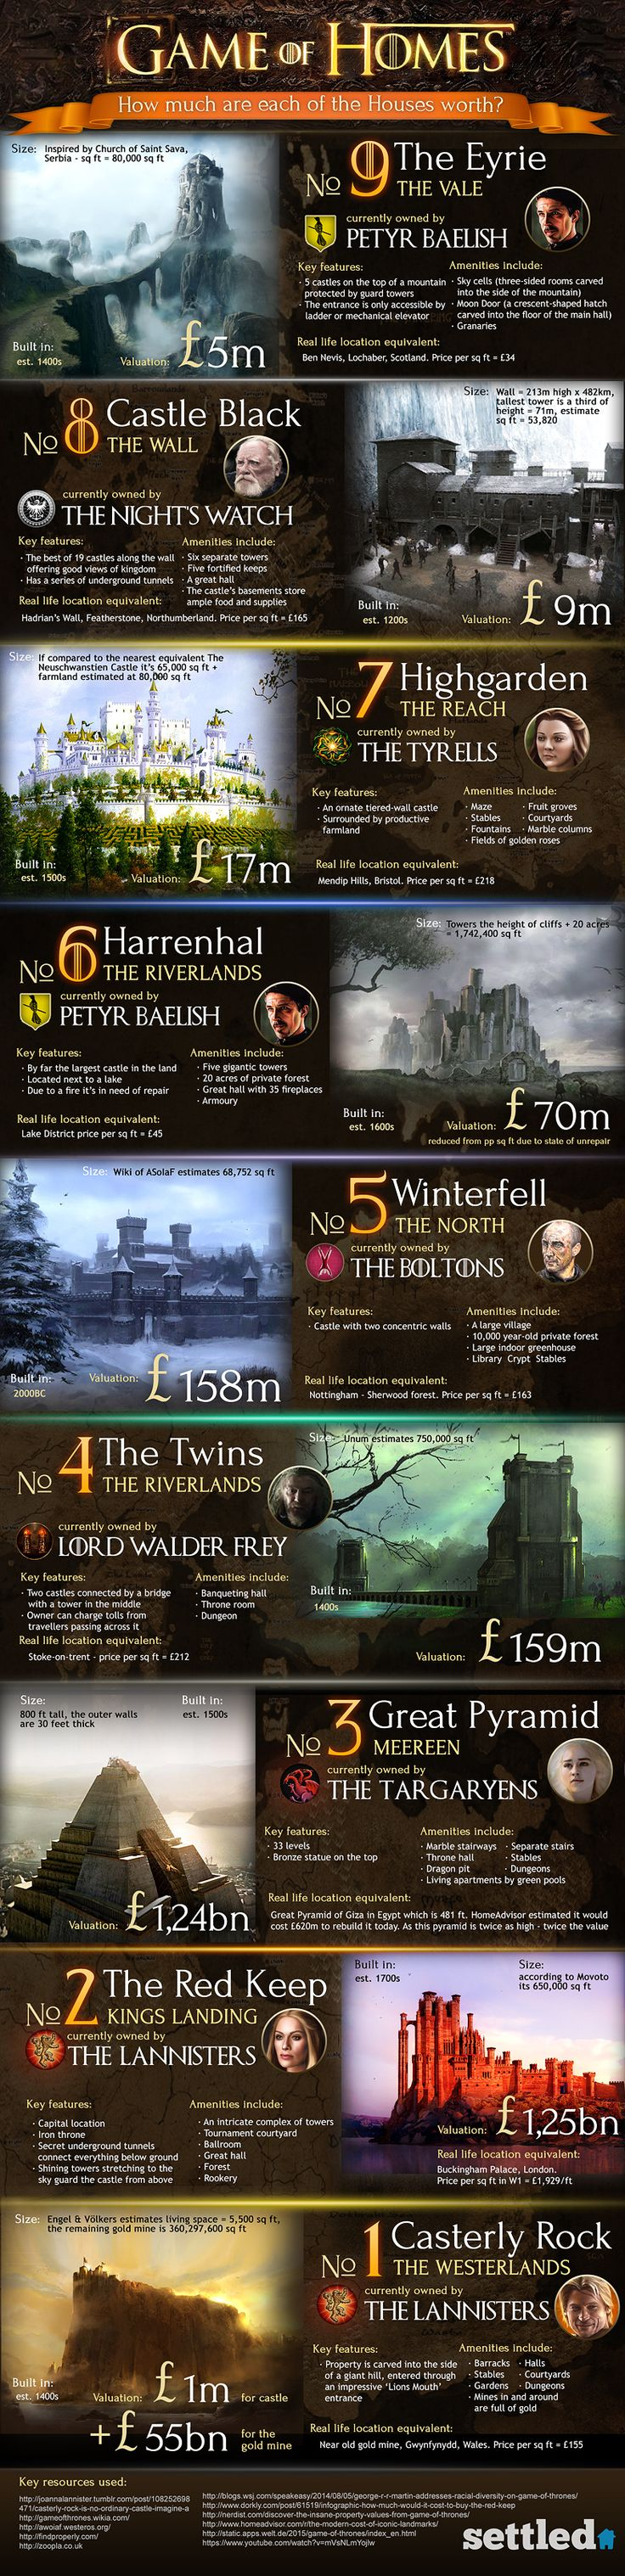 Game of Homes - How much are each of the Houses worth? #Infographic #RealEstate